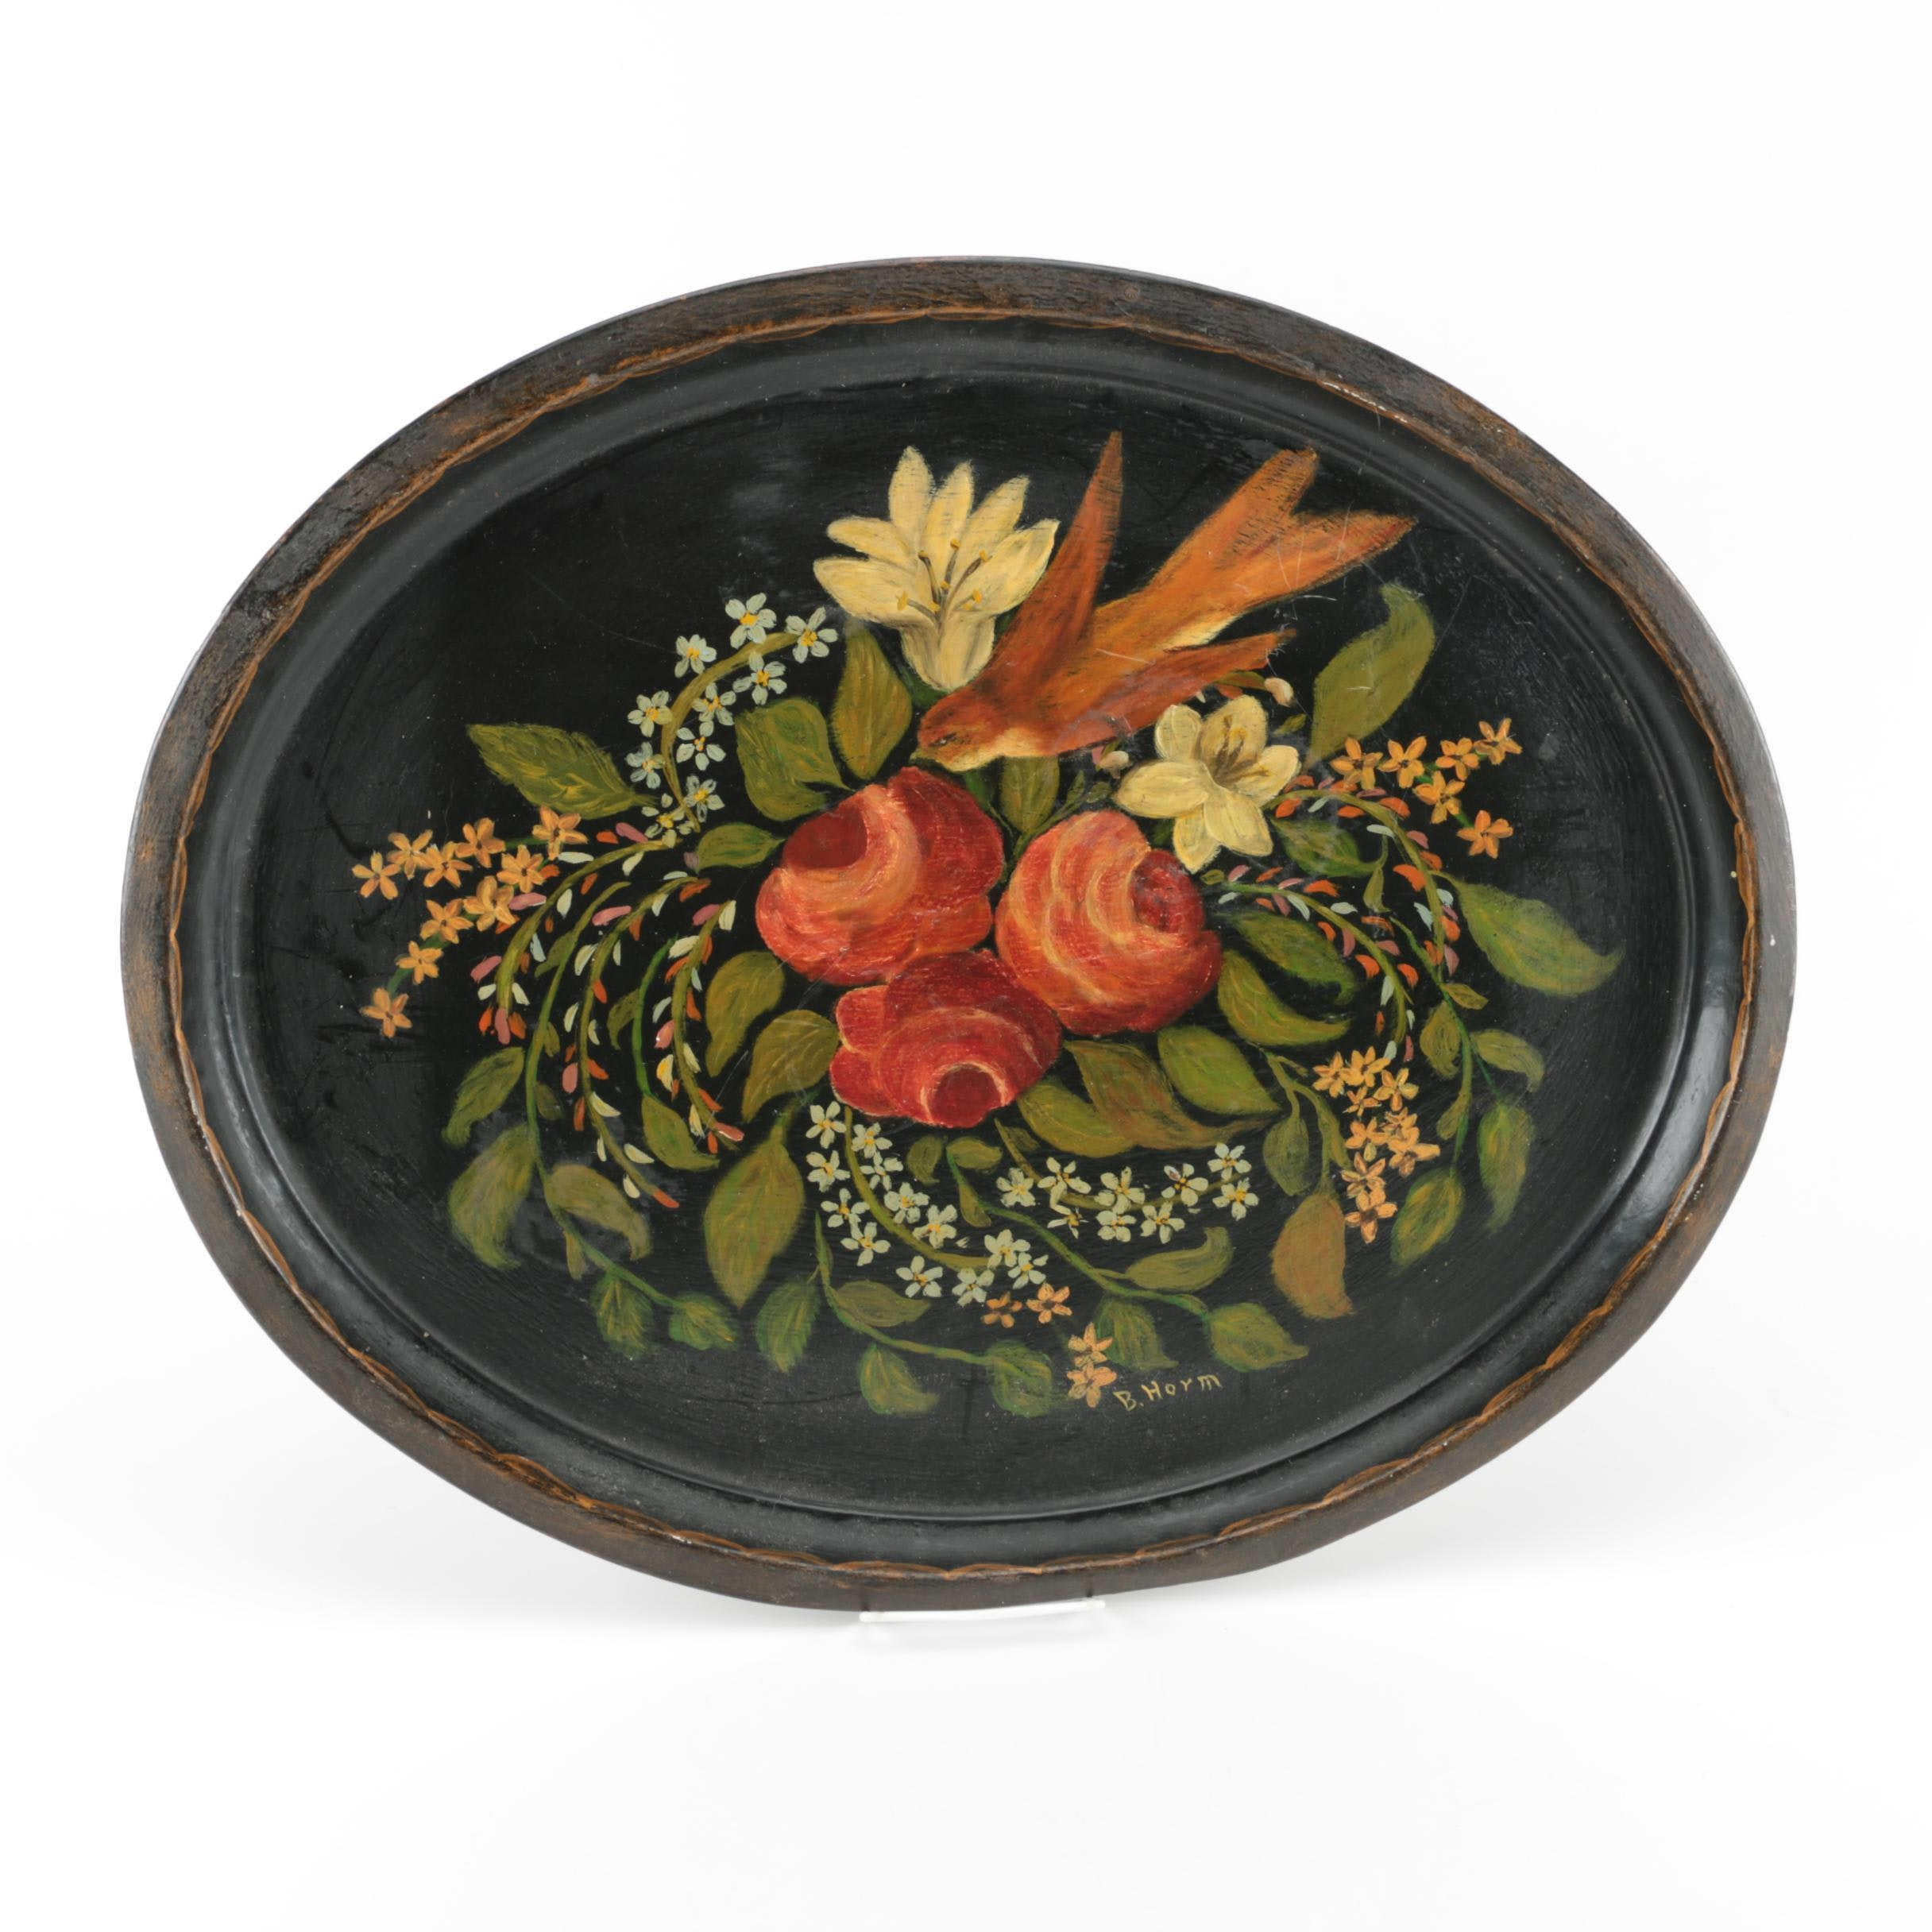 Tole Oval Floral Motif Serving Tray